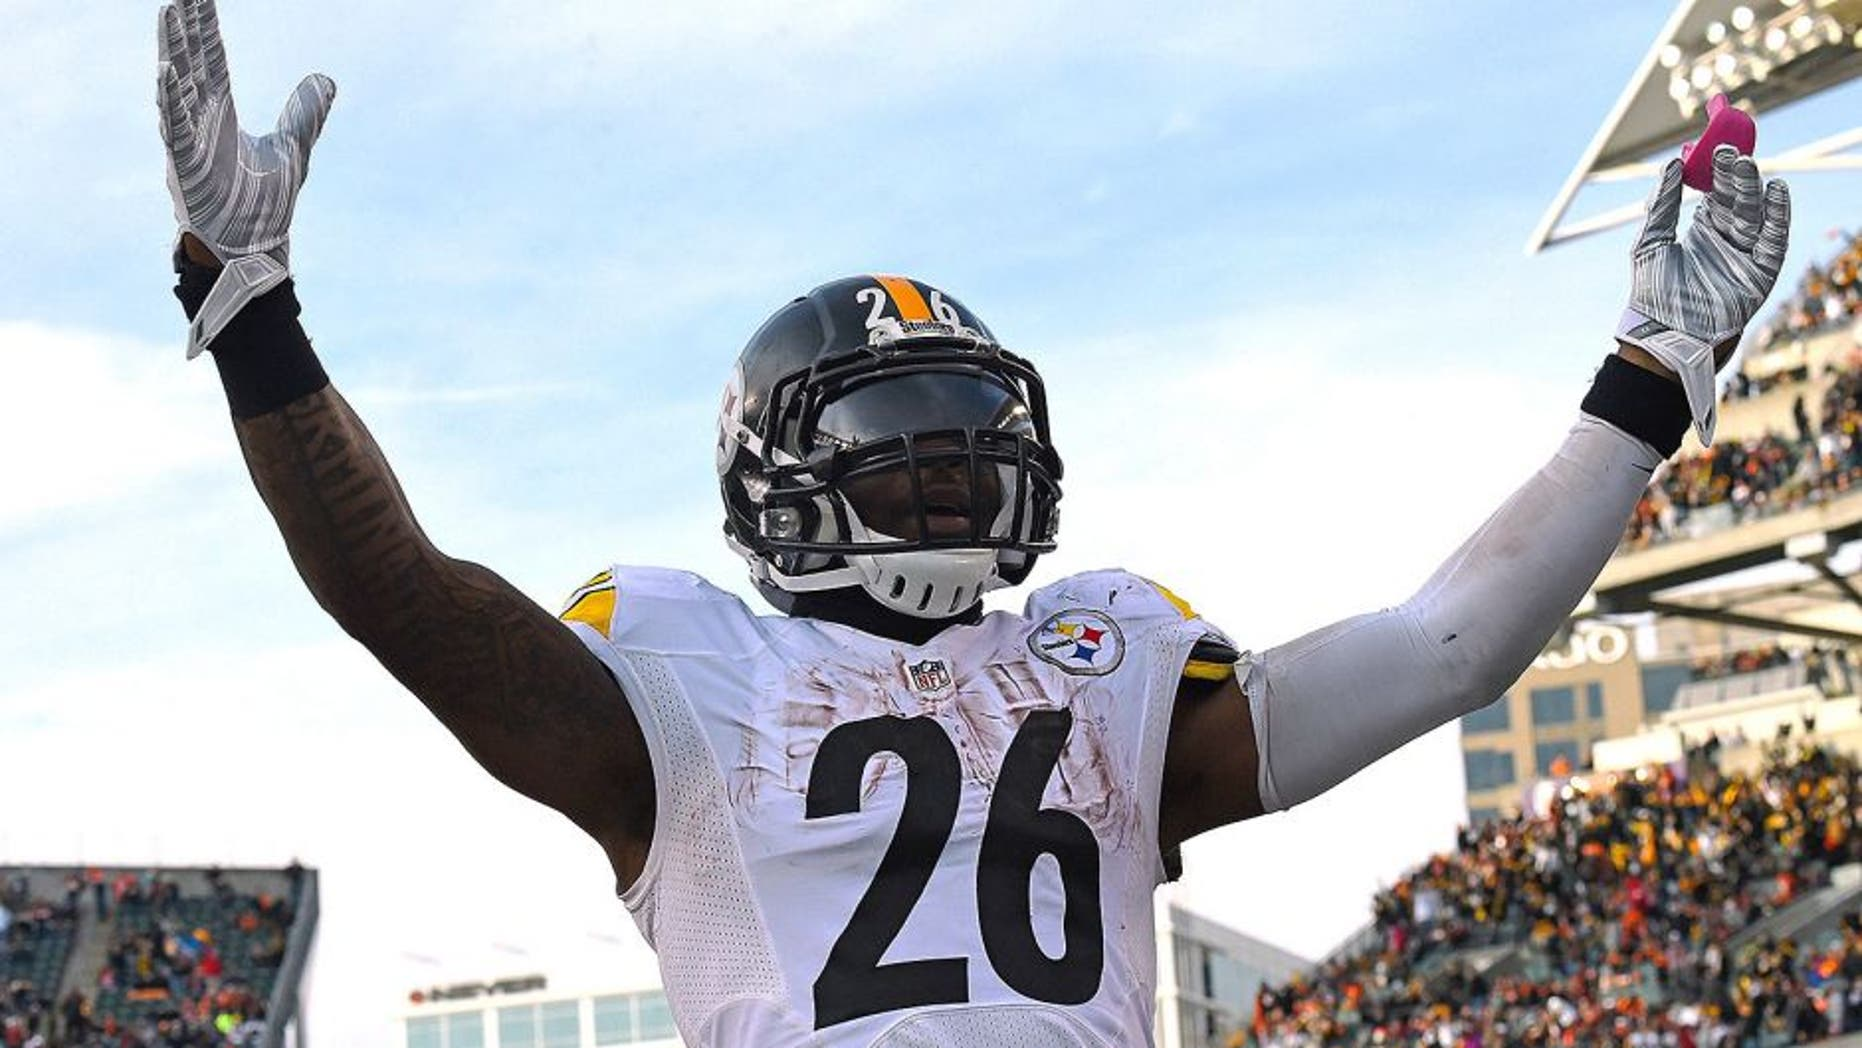 Dec 7, 2014; Cincinnati, OH, USA; Pittsburgh Steelers running back Le'Veon Bell (26) reacts after scoring a touchdown against the Cincinnati Bengals during the second half at Paul Brown Stadium. Pittsburgh Steelers defeat the Cincinnati Bengals 42-21. Mandatory Credit: Mike DiNovo-USA TODAY Sports